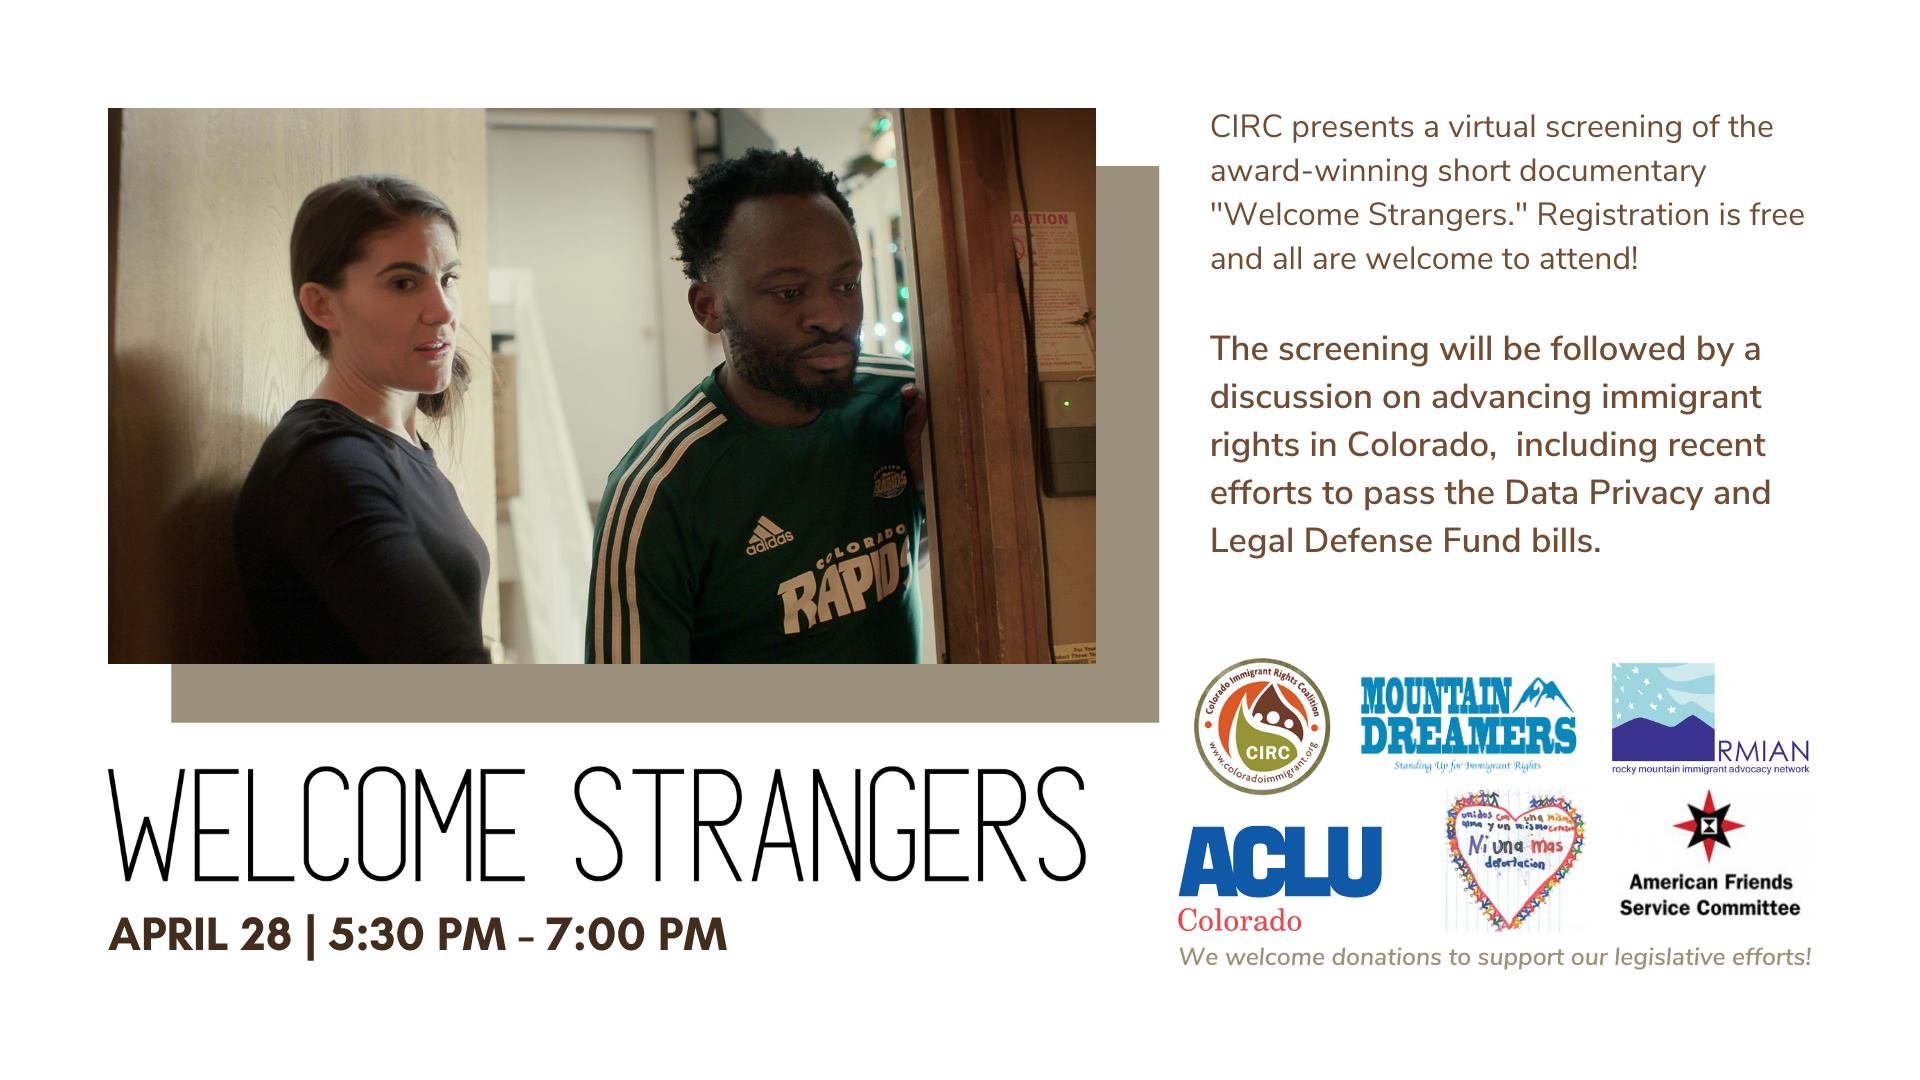 Welcome Strangers Today 5:30 PM - 7:00 PM